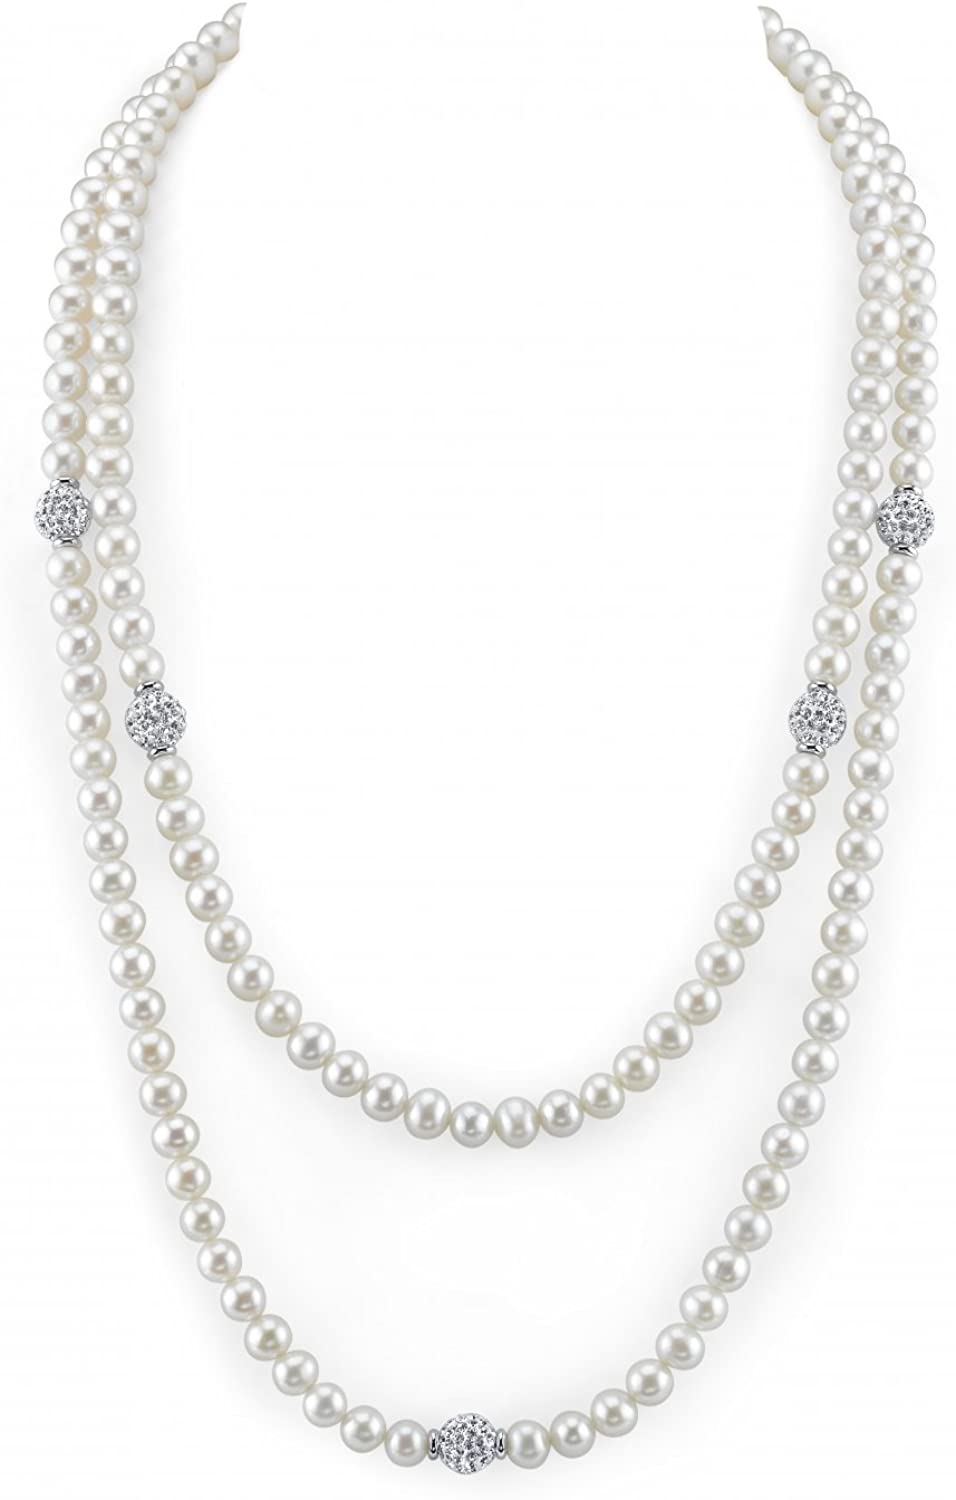 Many popular brands THE PEARL SOURCE 6-7mm Genuine Cultured Pearl Freshwater Sales White